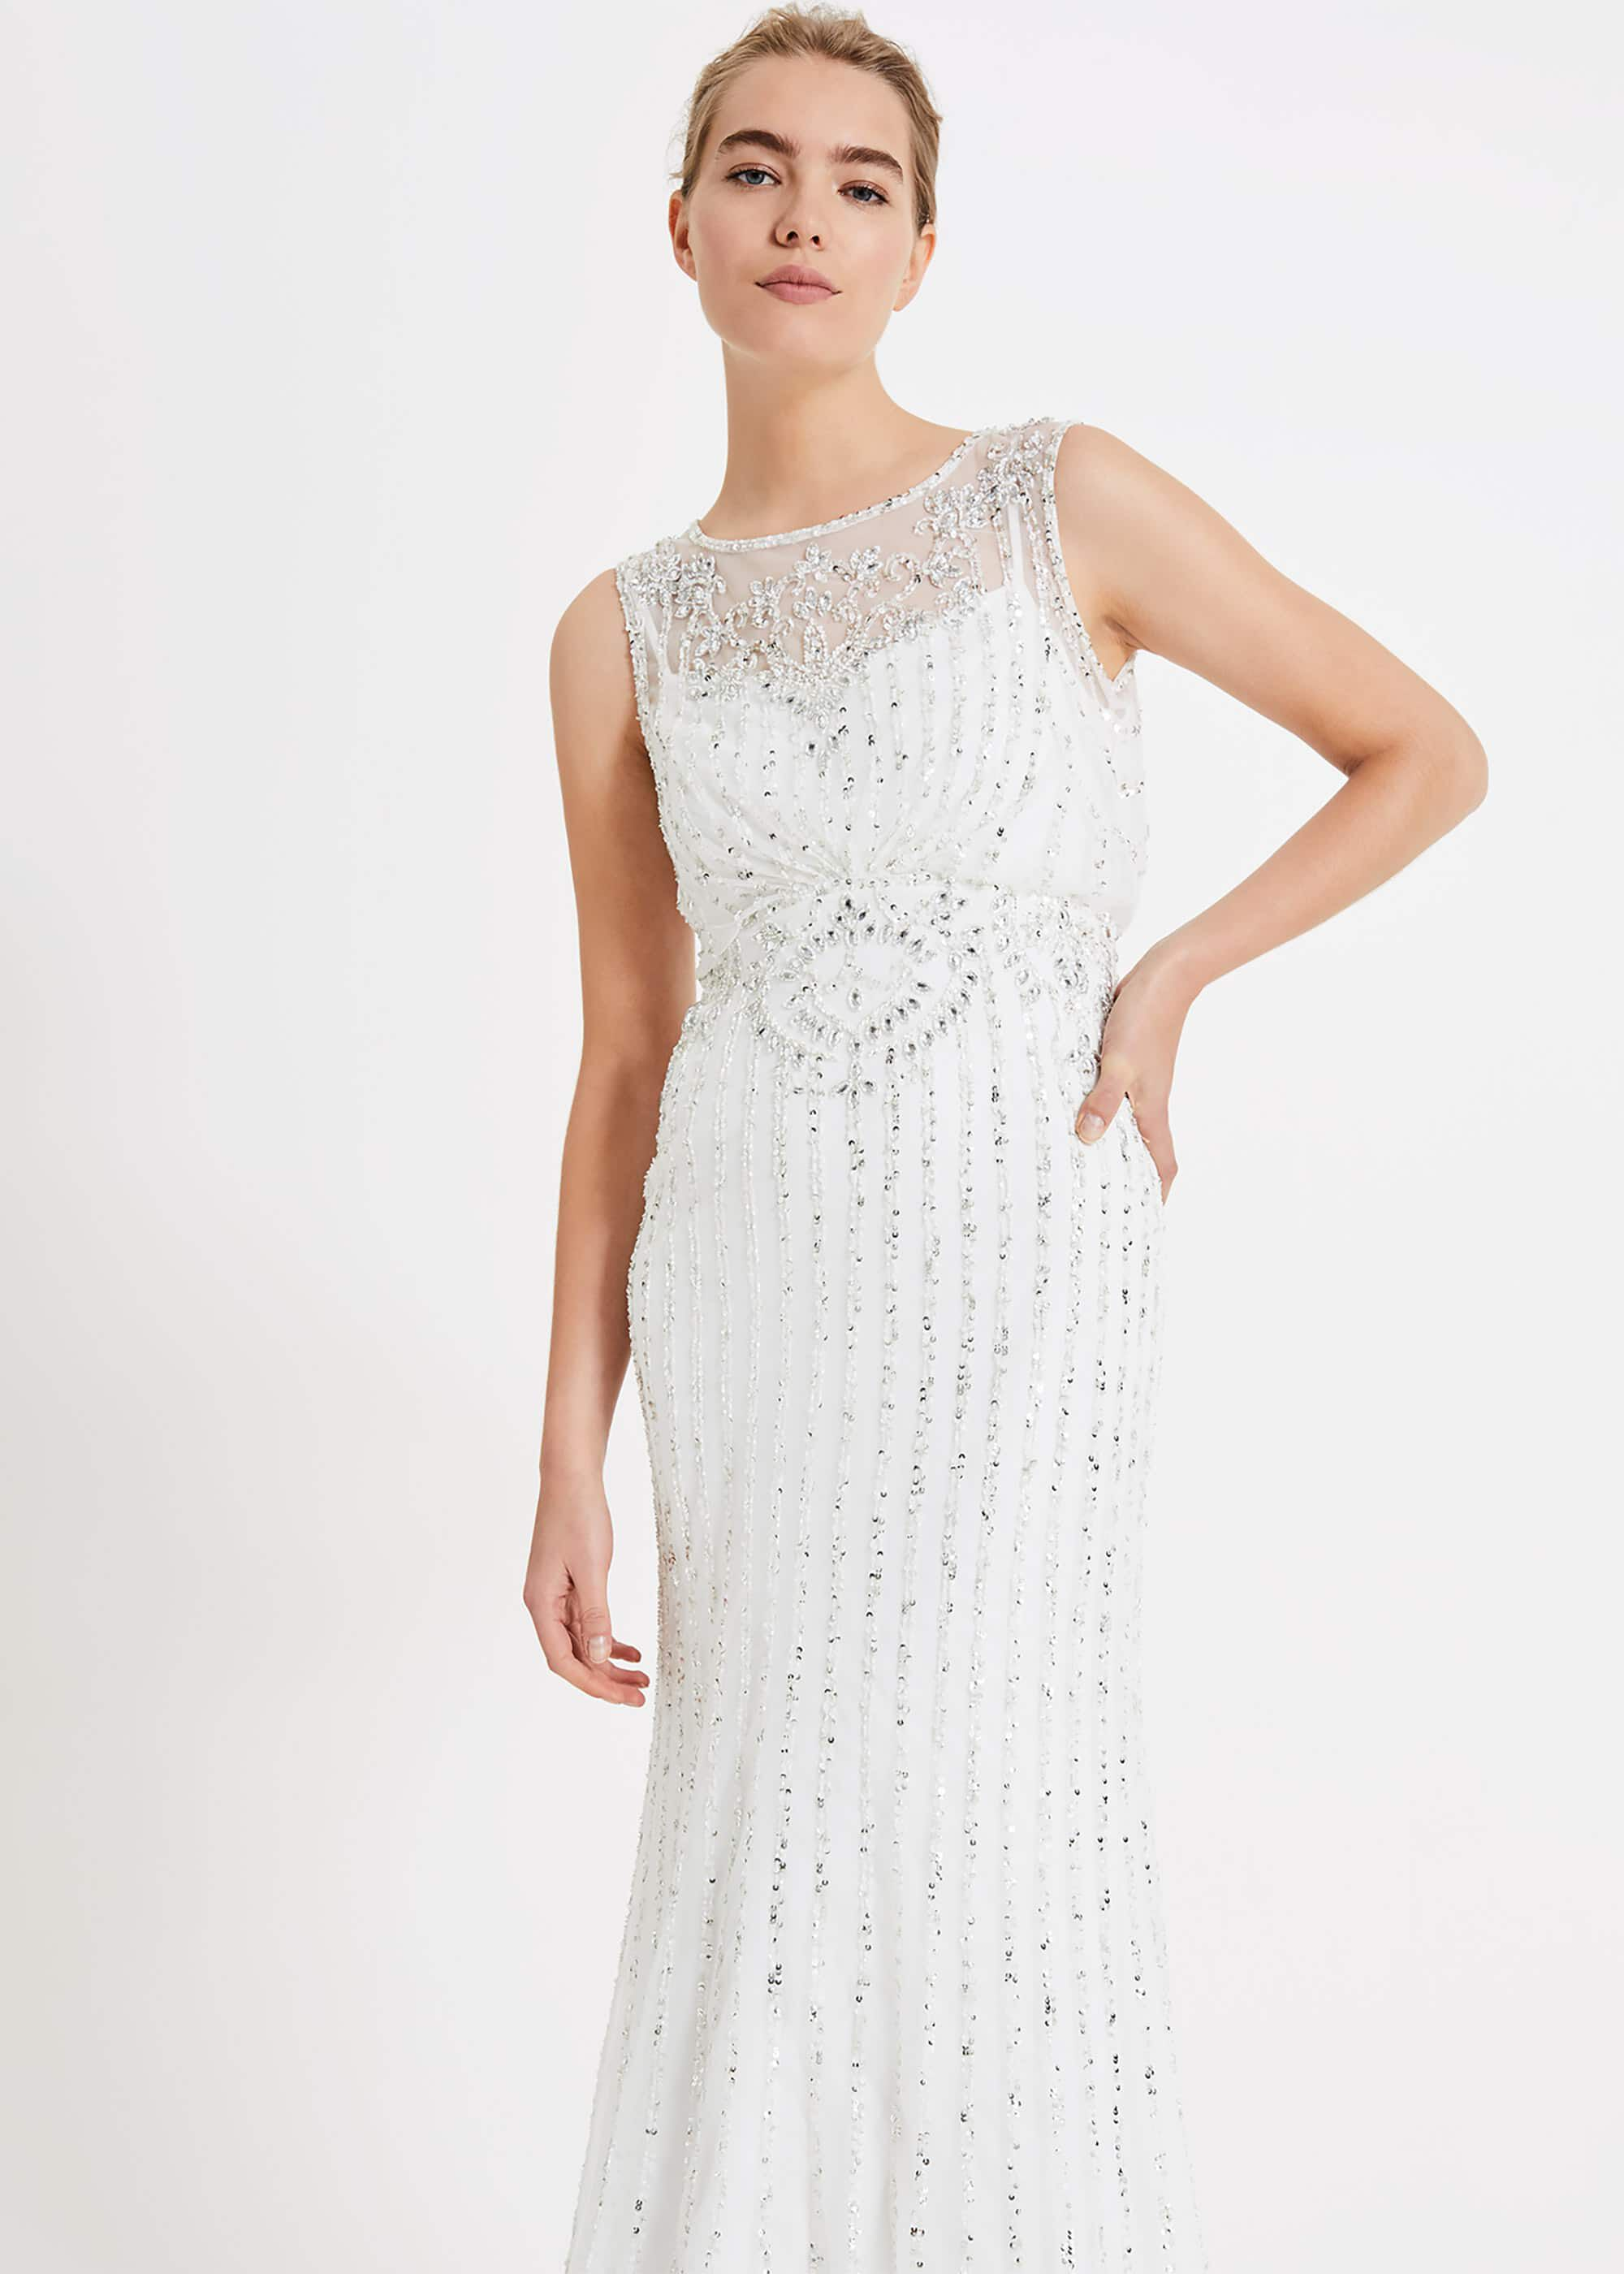 Milly Beaded Wedding Dress | Phase Eight